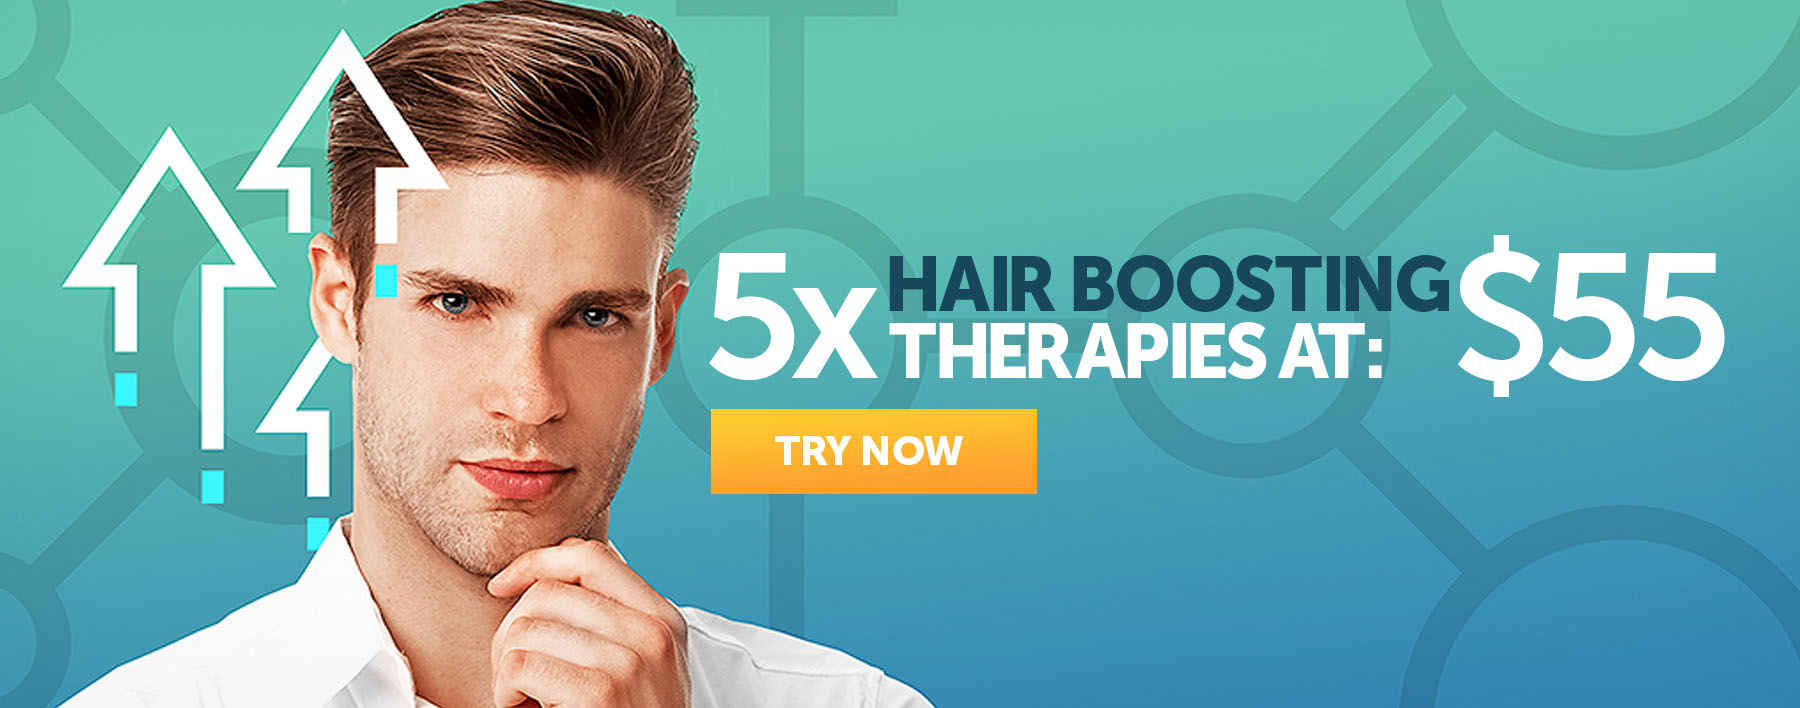 5 Hair Booster Therapies at $55